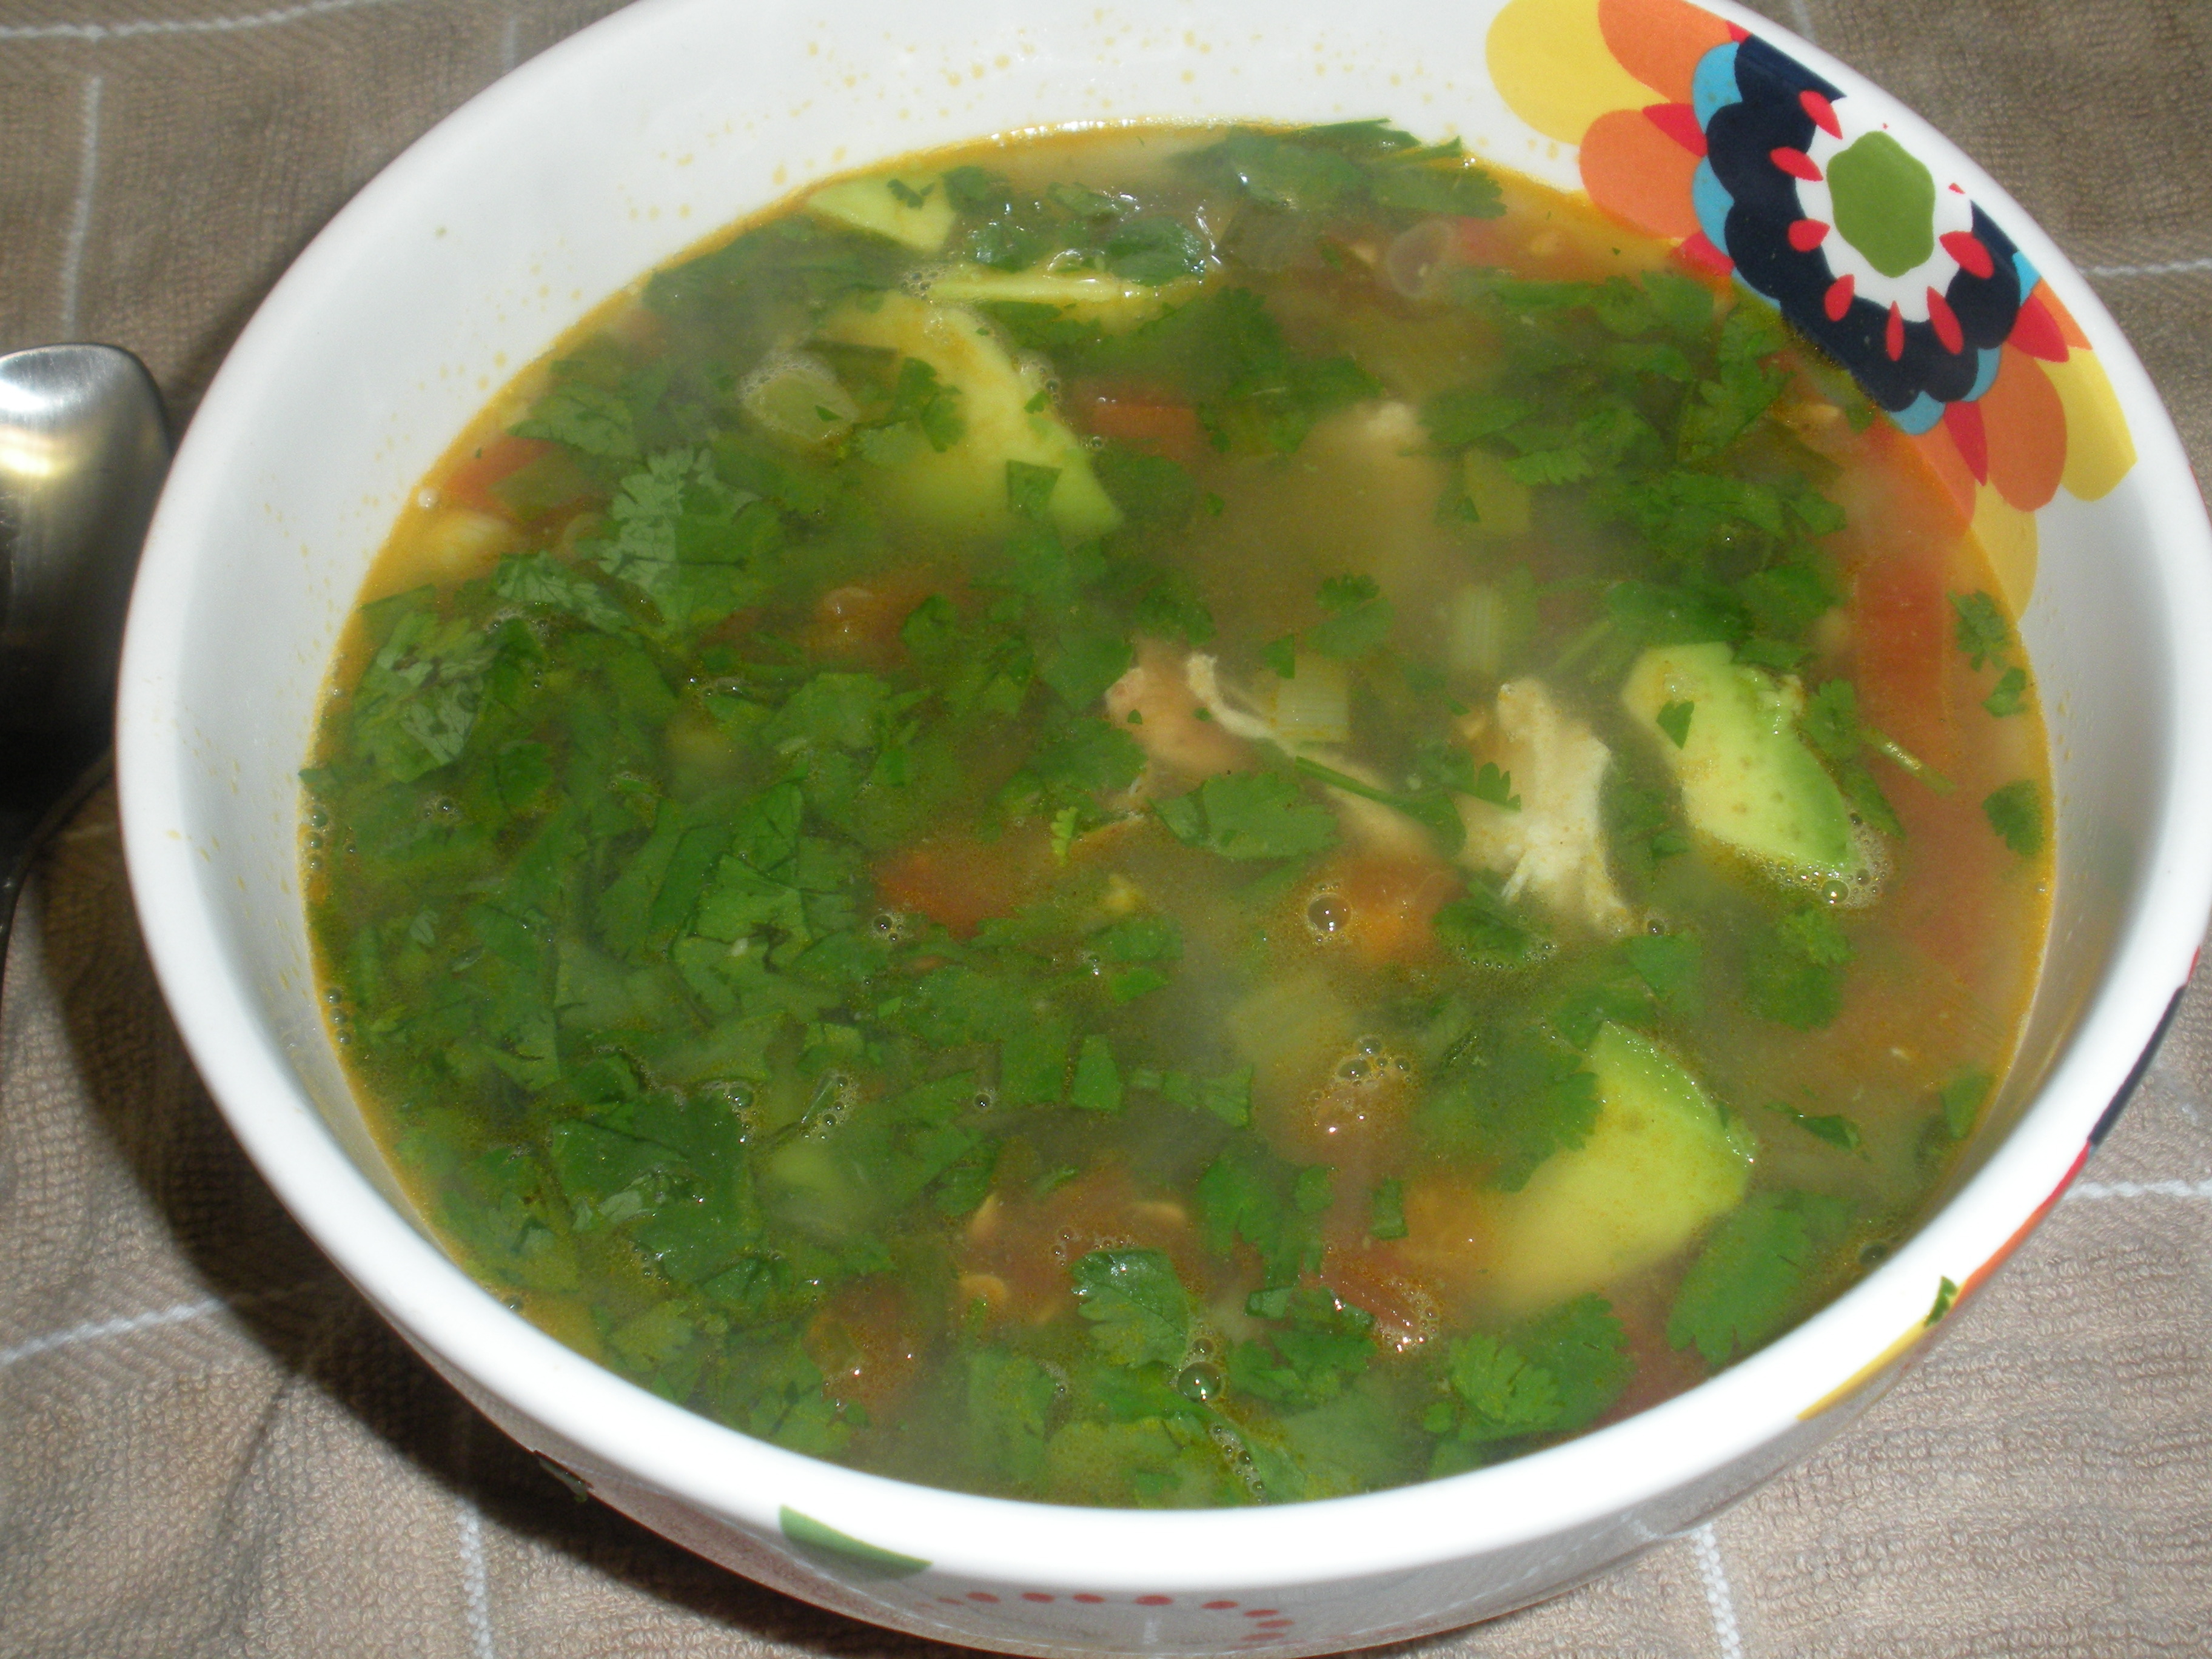 Day 91, 92, 93, and 94: Chicken and Avocado Soup